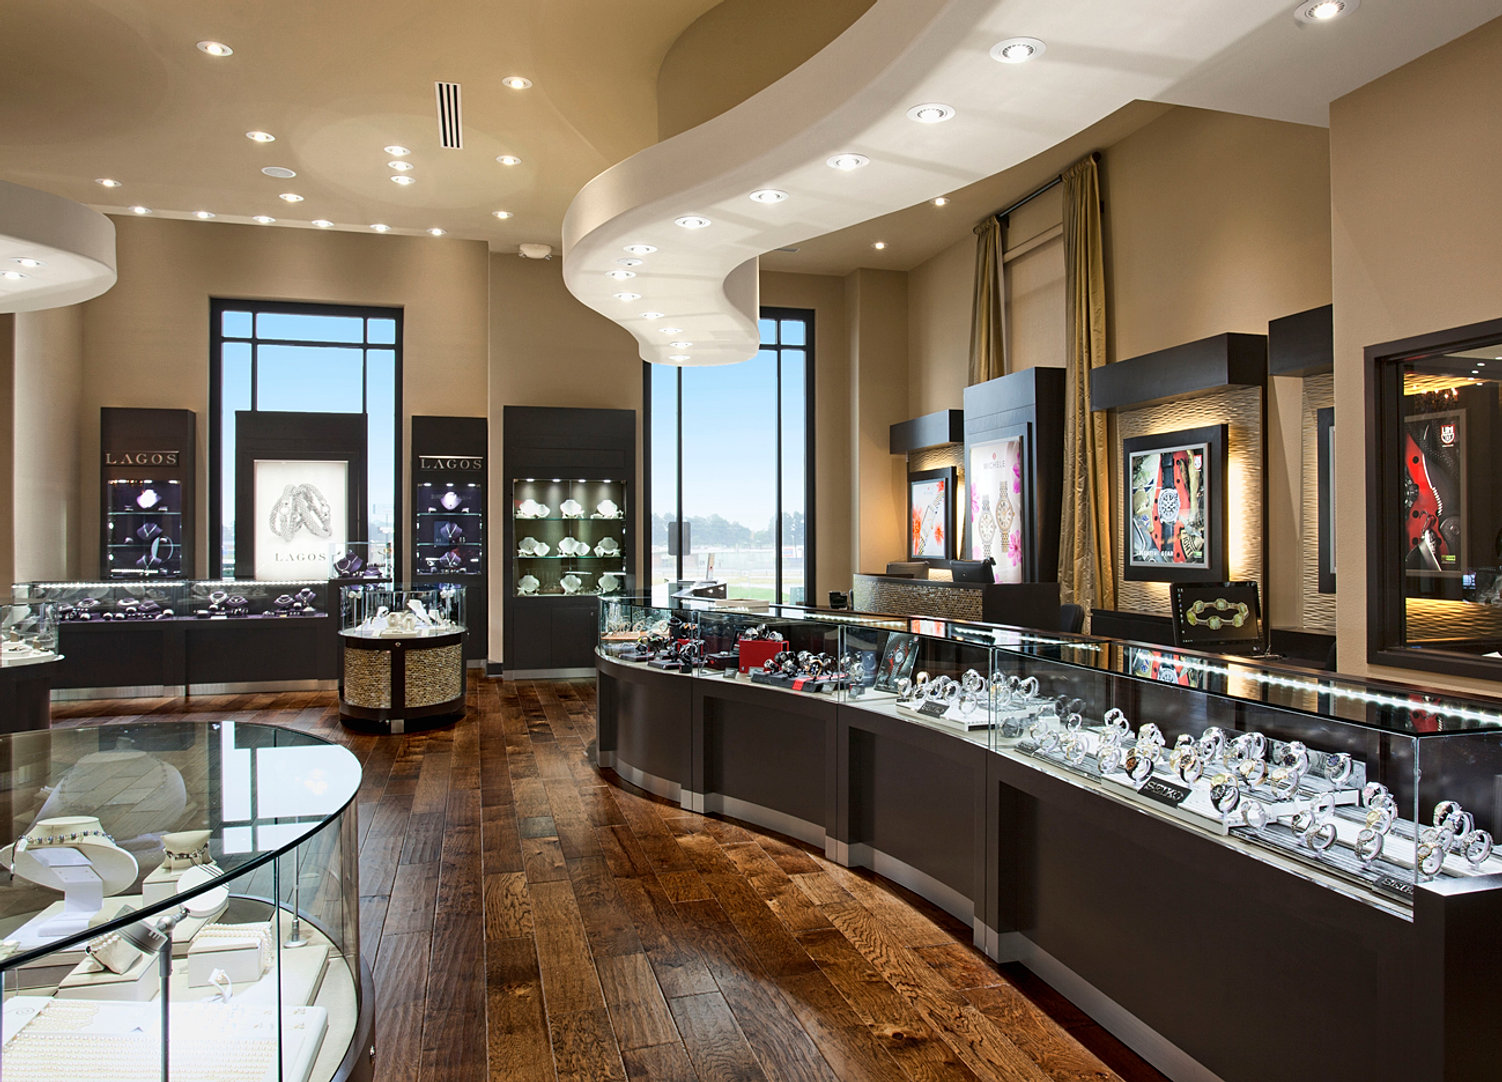 Artco Group Inc. We are store planners, designers, Manufacturers of Custom  Millwork and store fixtures.